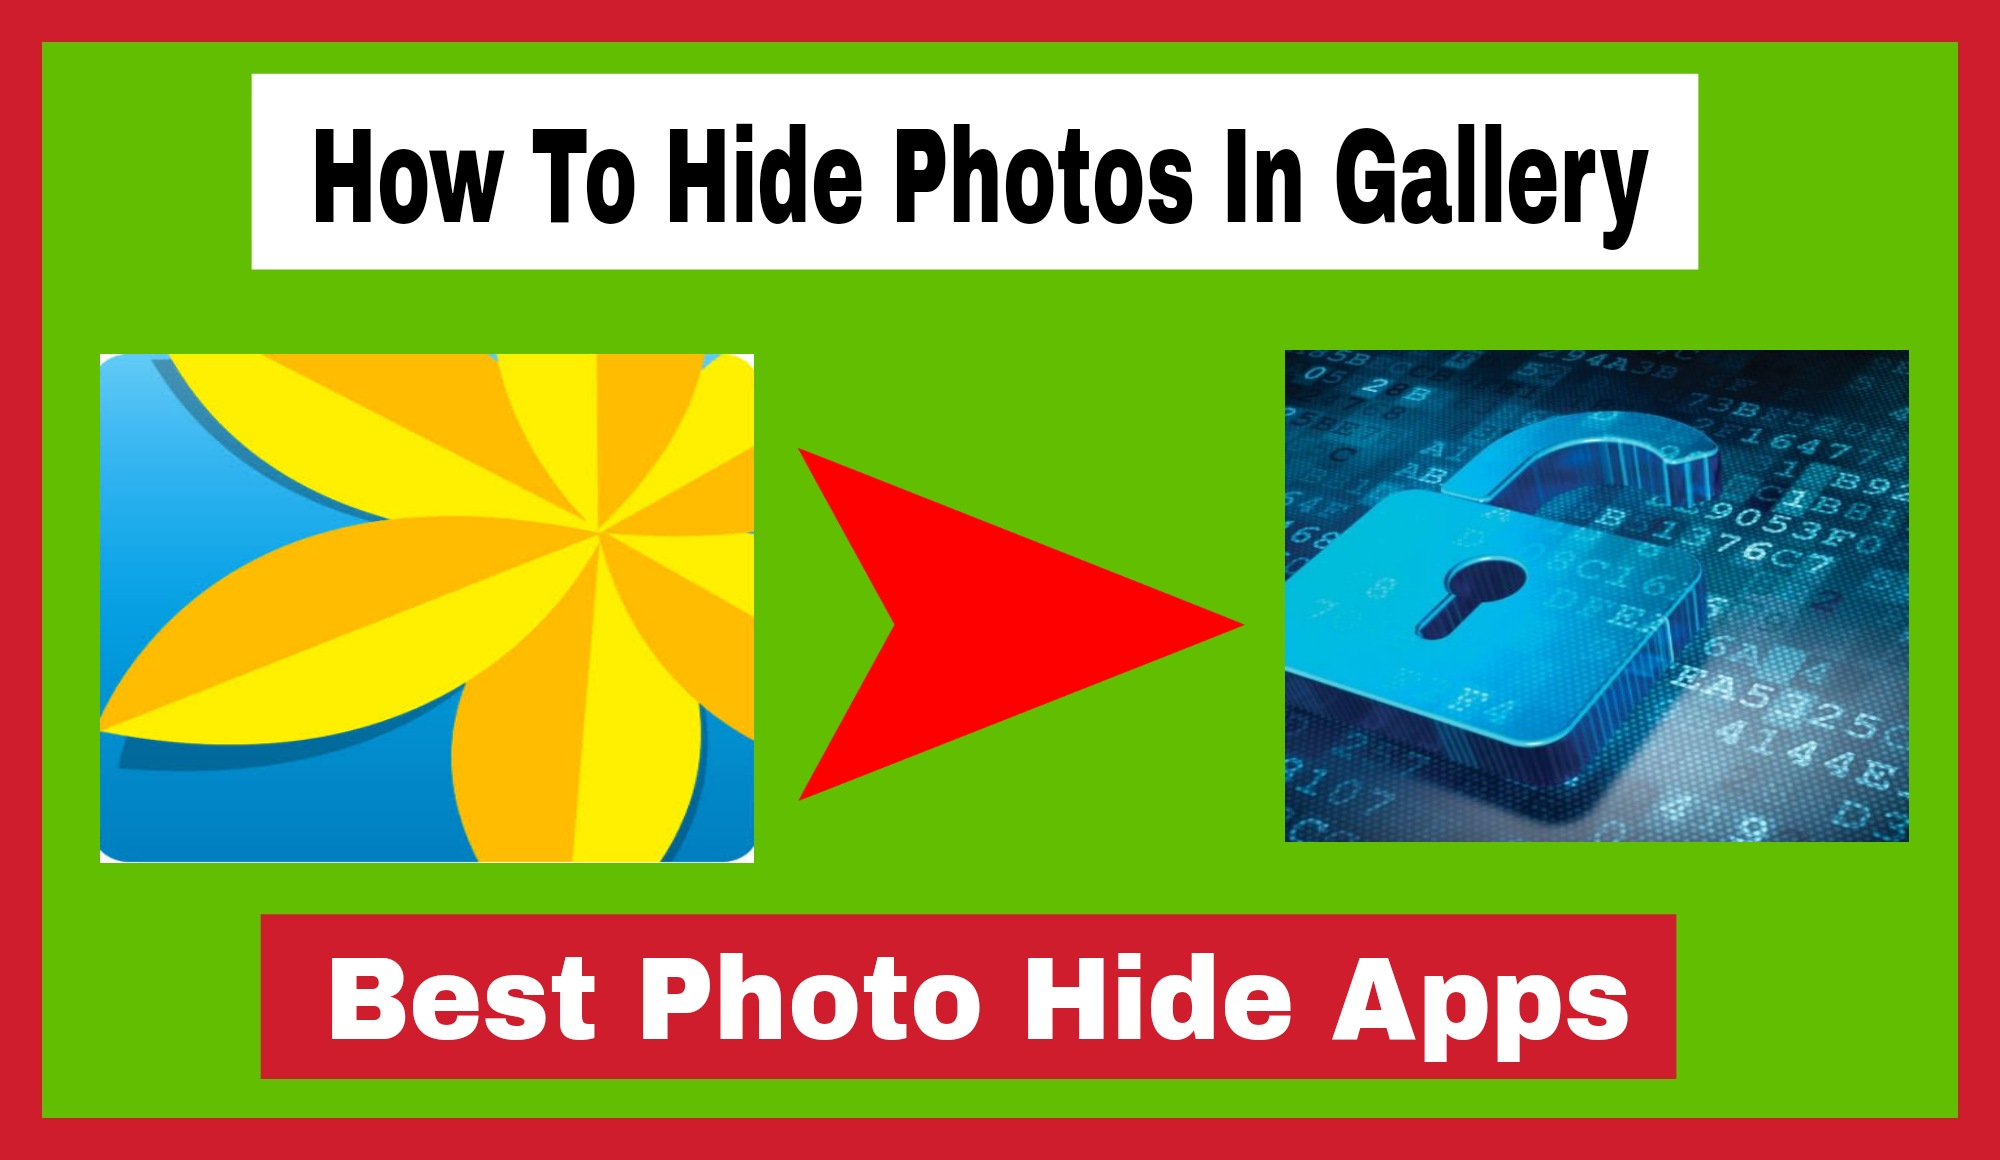 How To Hide Photos In Gallery